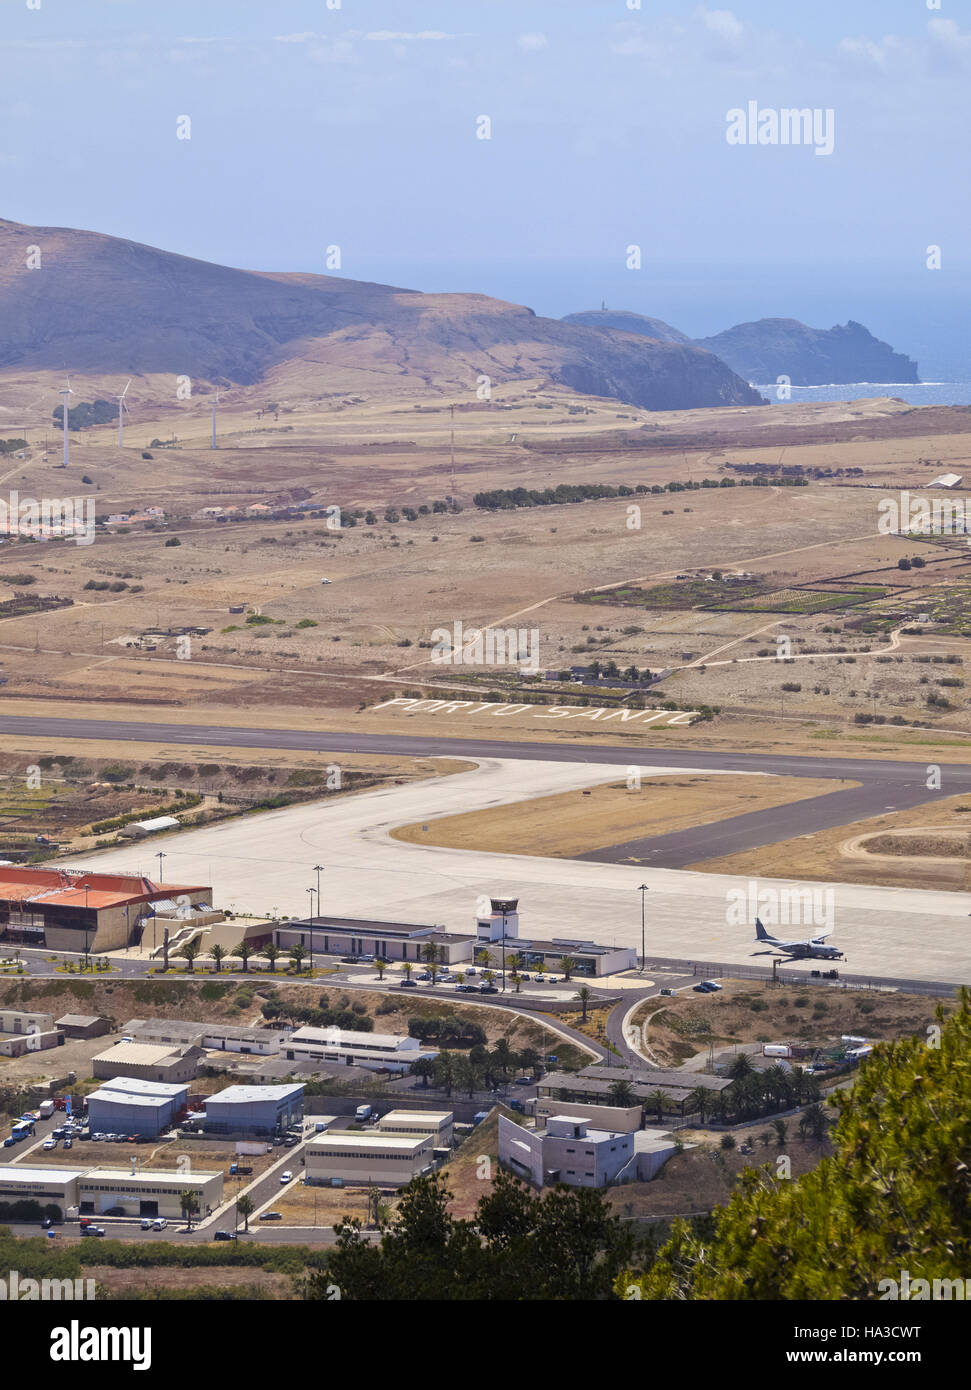 Portugal, Madeira Islands, Porto Santo, View of the Porto Santo Airport. - Stock Image